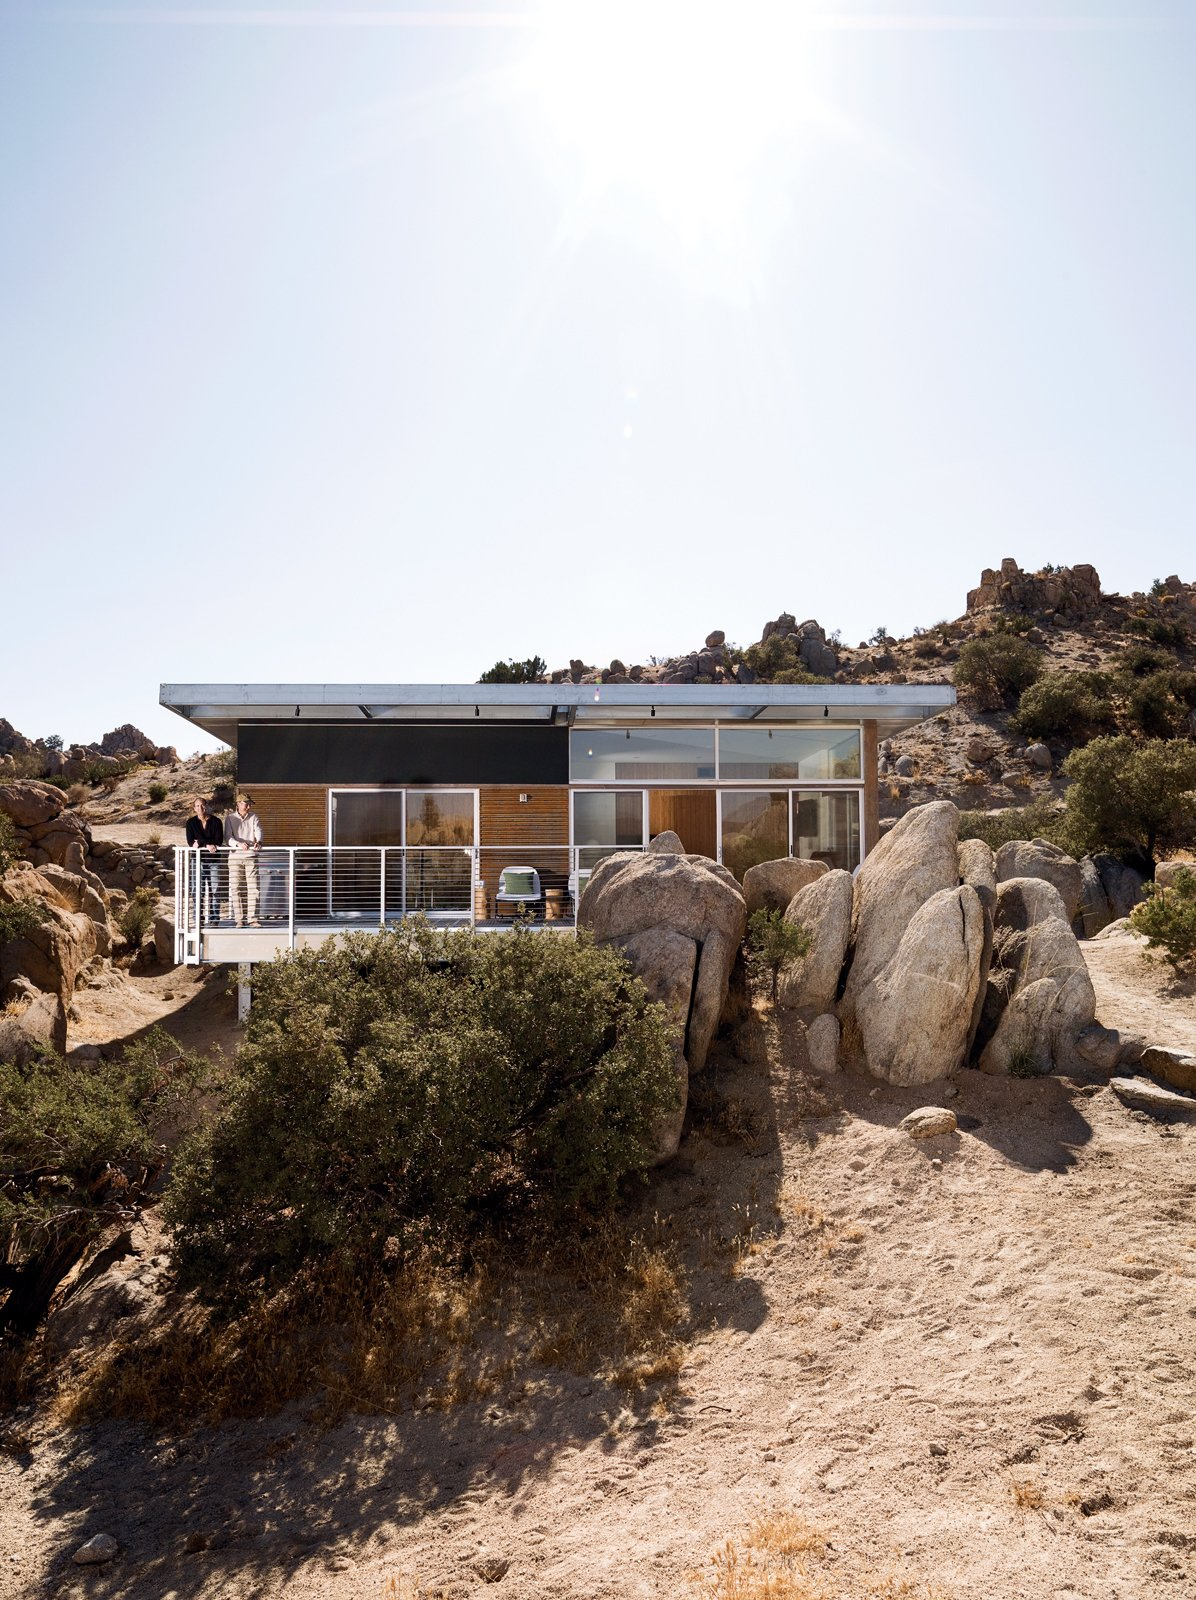 "The Blue Sky prototype house leads a second life as desert getaway for David McAdam and his partner Scott Smith. Tagged: Outdoor, Boulders, Trees, Small Patio, Porch, Deck, Back Yard, Wood Patio, Porch, Deck, Metal Patio, Porch, Deck, and Desert.  Photo 4 of 23 in 20 Desert Homes from Small ""Hybrid Prefab"" Home in the Desert"